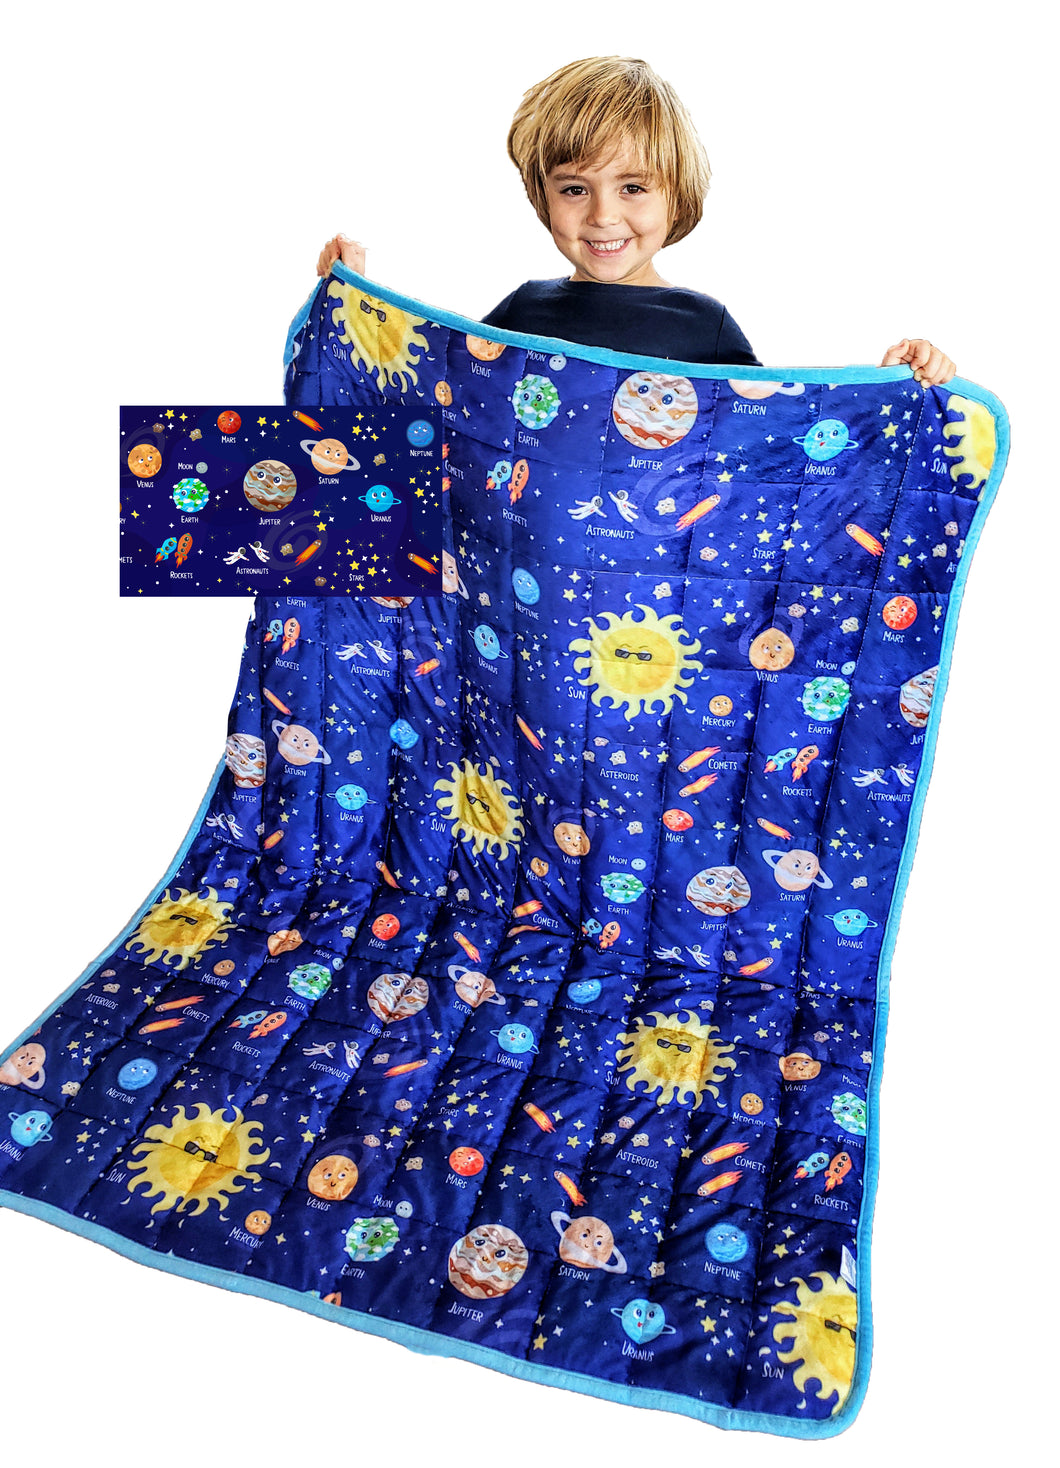 Weighted Blanket Kids 5 lbs 55